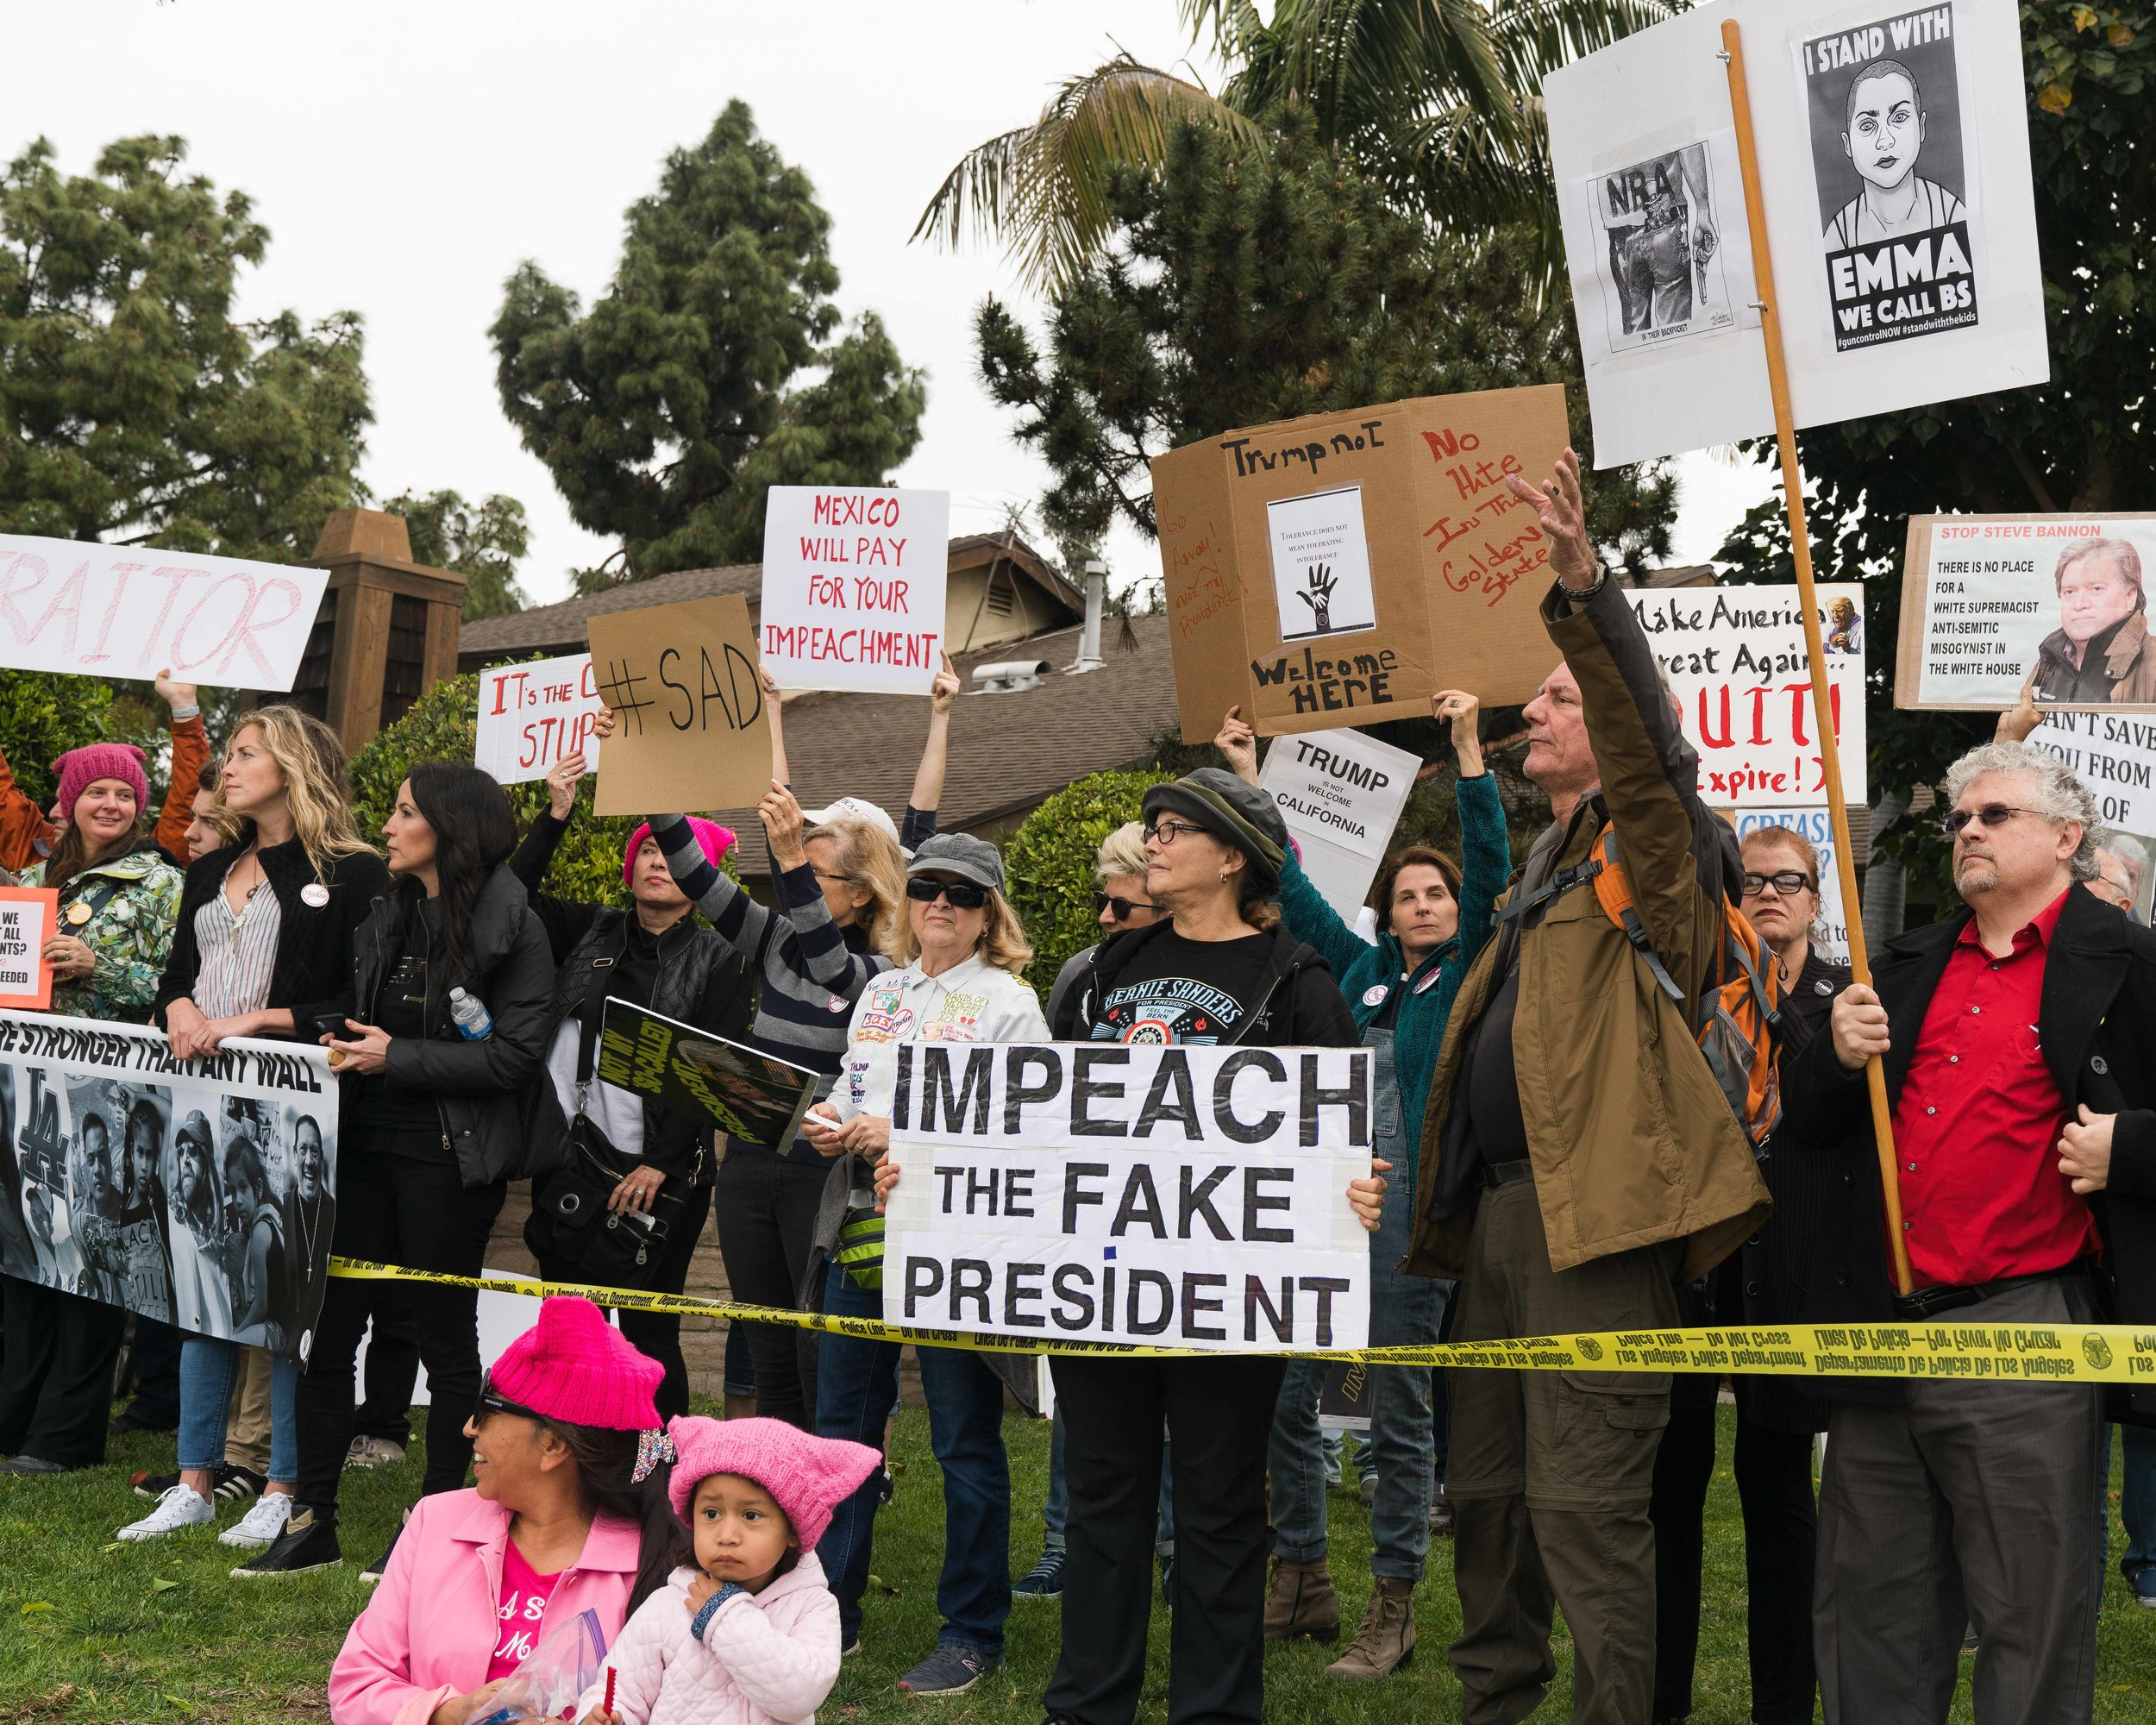 """Protesters gather near Ocean Park Blvd and Centinela Avenue in Santa Monica, California on Tuesday, March 13, 2018 to protest the arrival of President Donald Trump. """"I feel like he's trespassing,"""" says Venice resident, Chris Blanch. (Helena Sung / Corsair Photo)"""